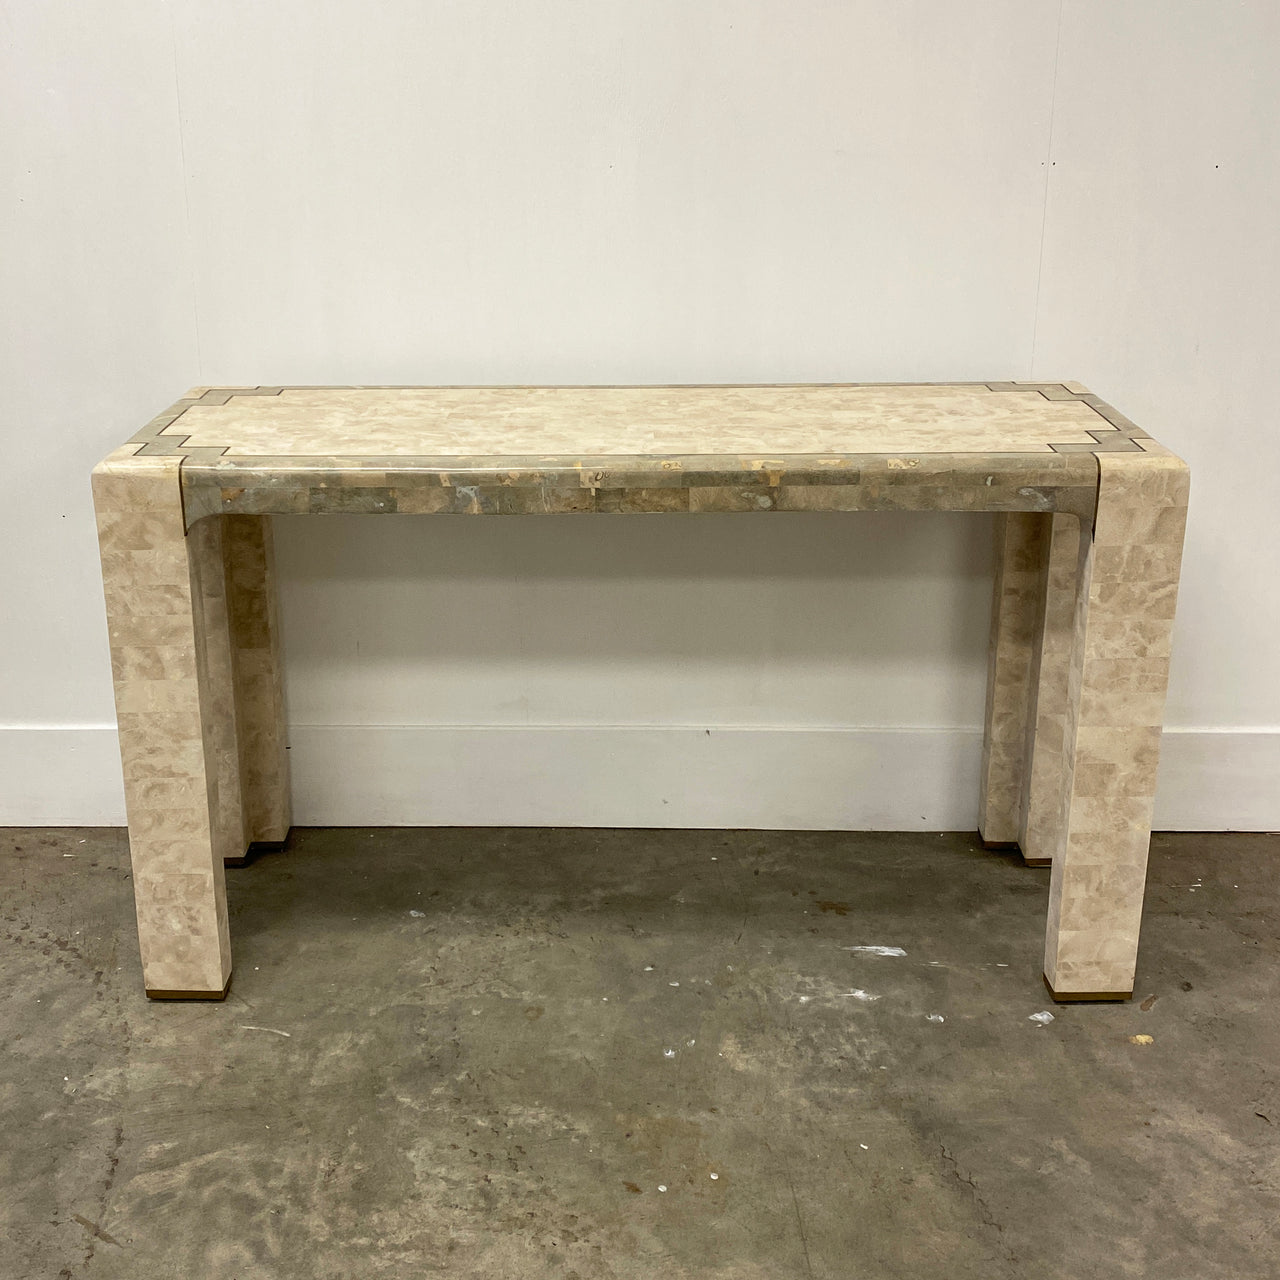 1980's Tessalated Fossilized Coral Stone Console Hall Table